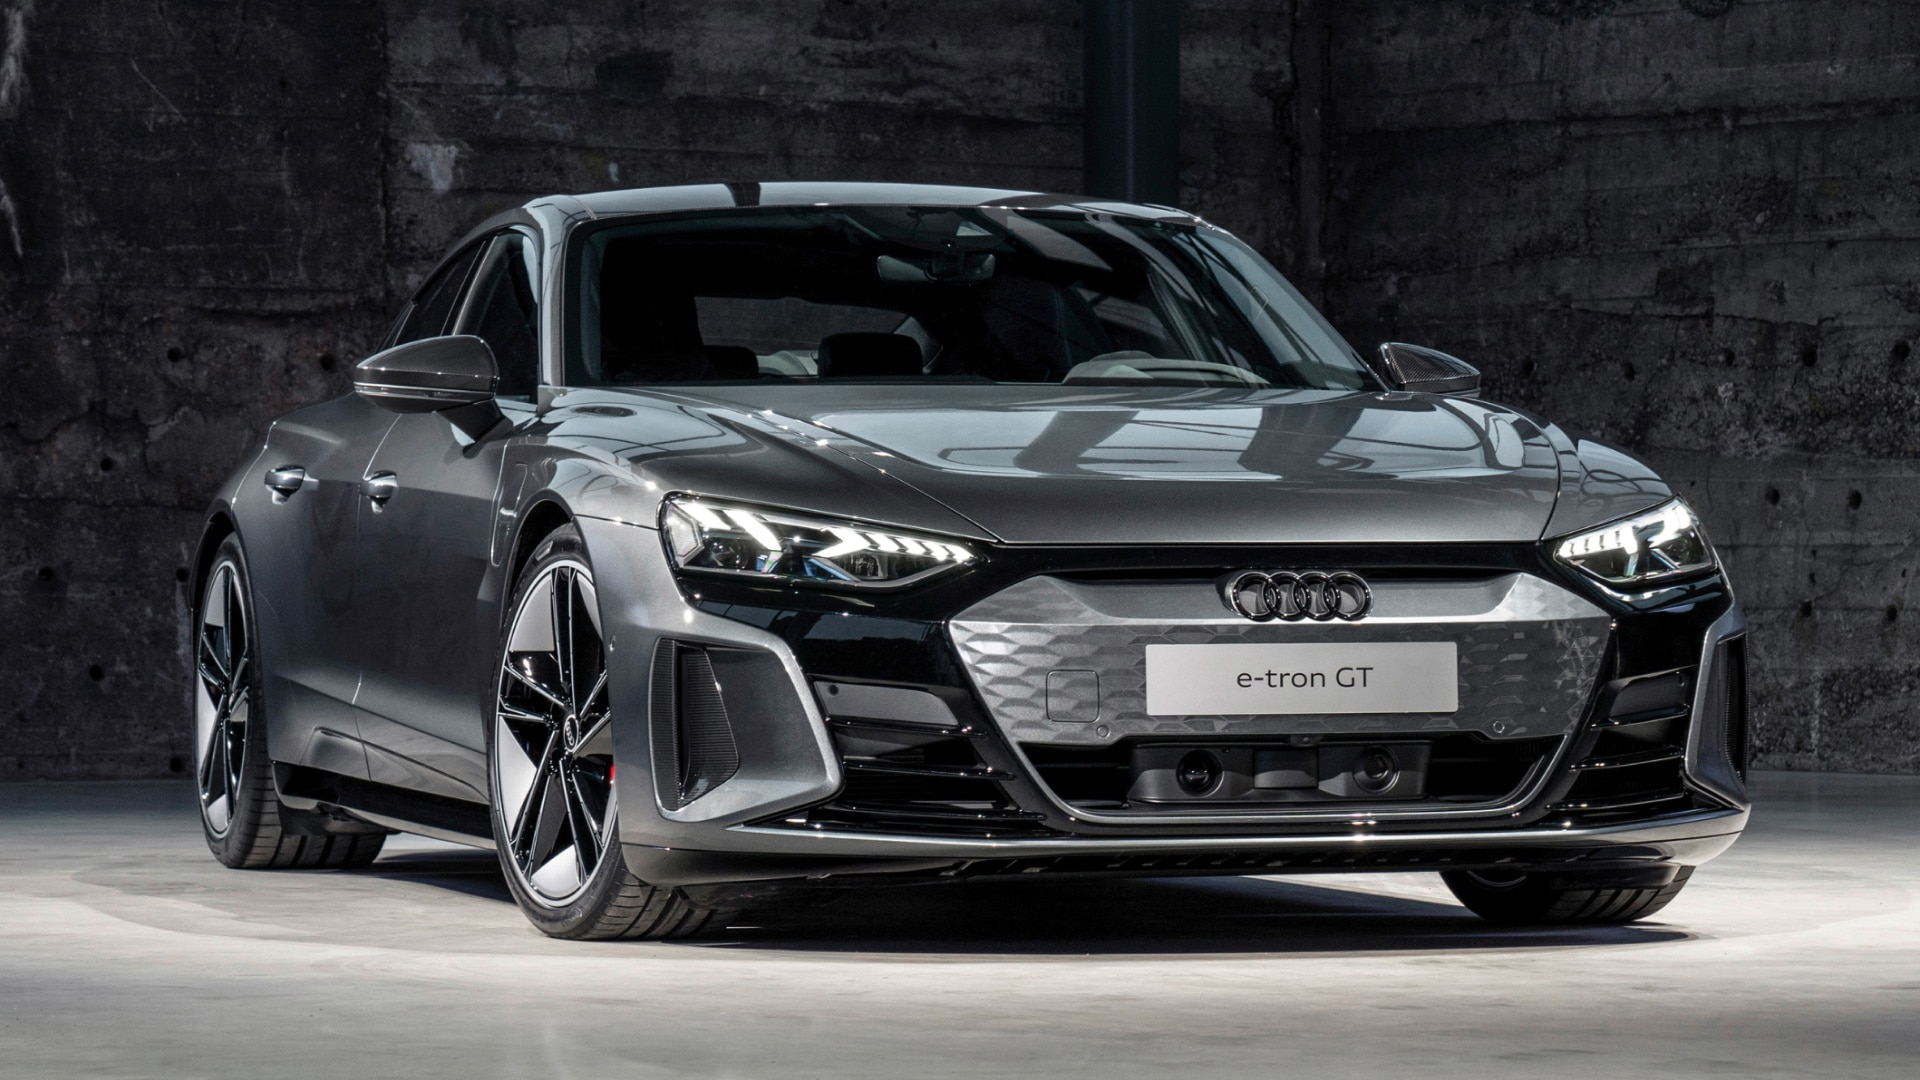 A Gran Turismo is a sporty touring car with excellent dynamic handling, a confident glider. The Audi e-tron GT shares this character.